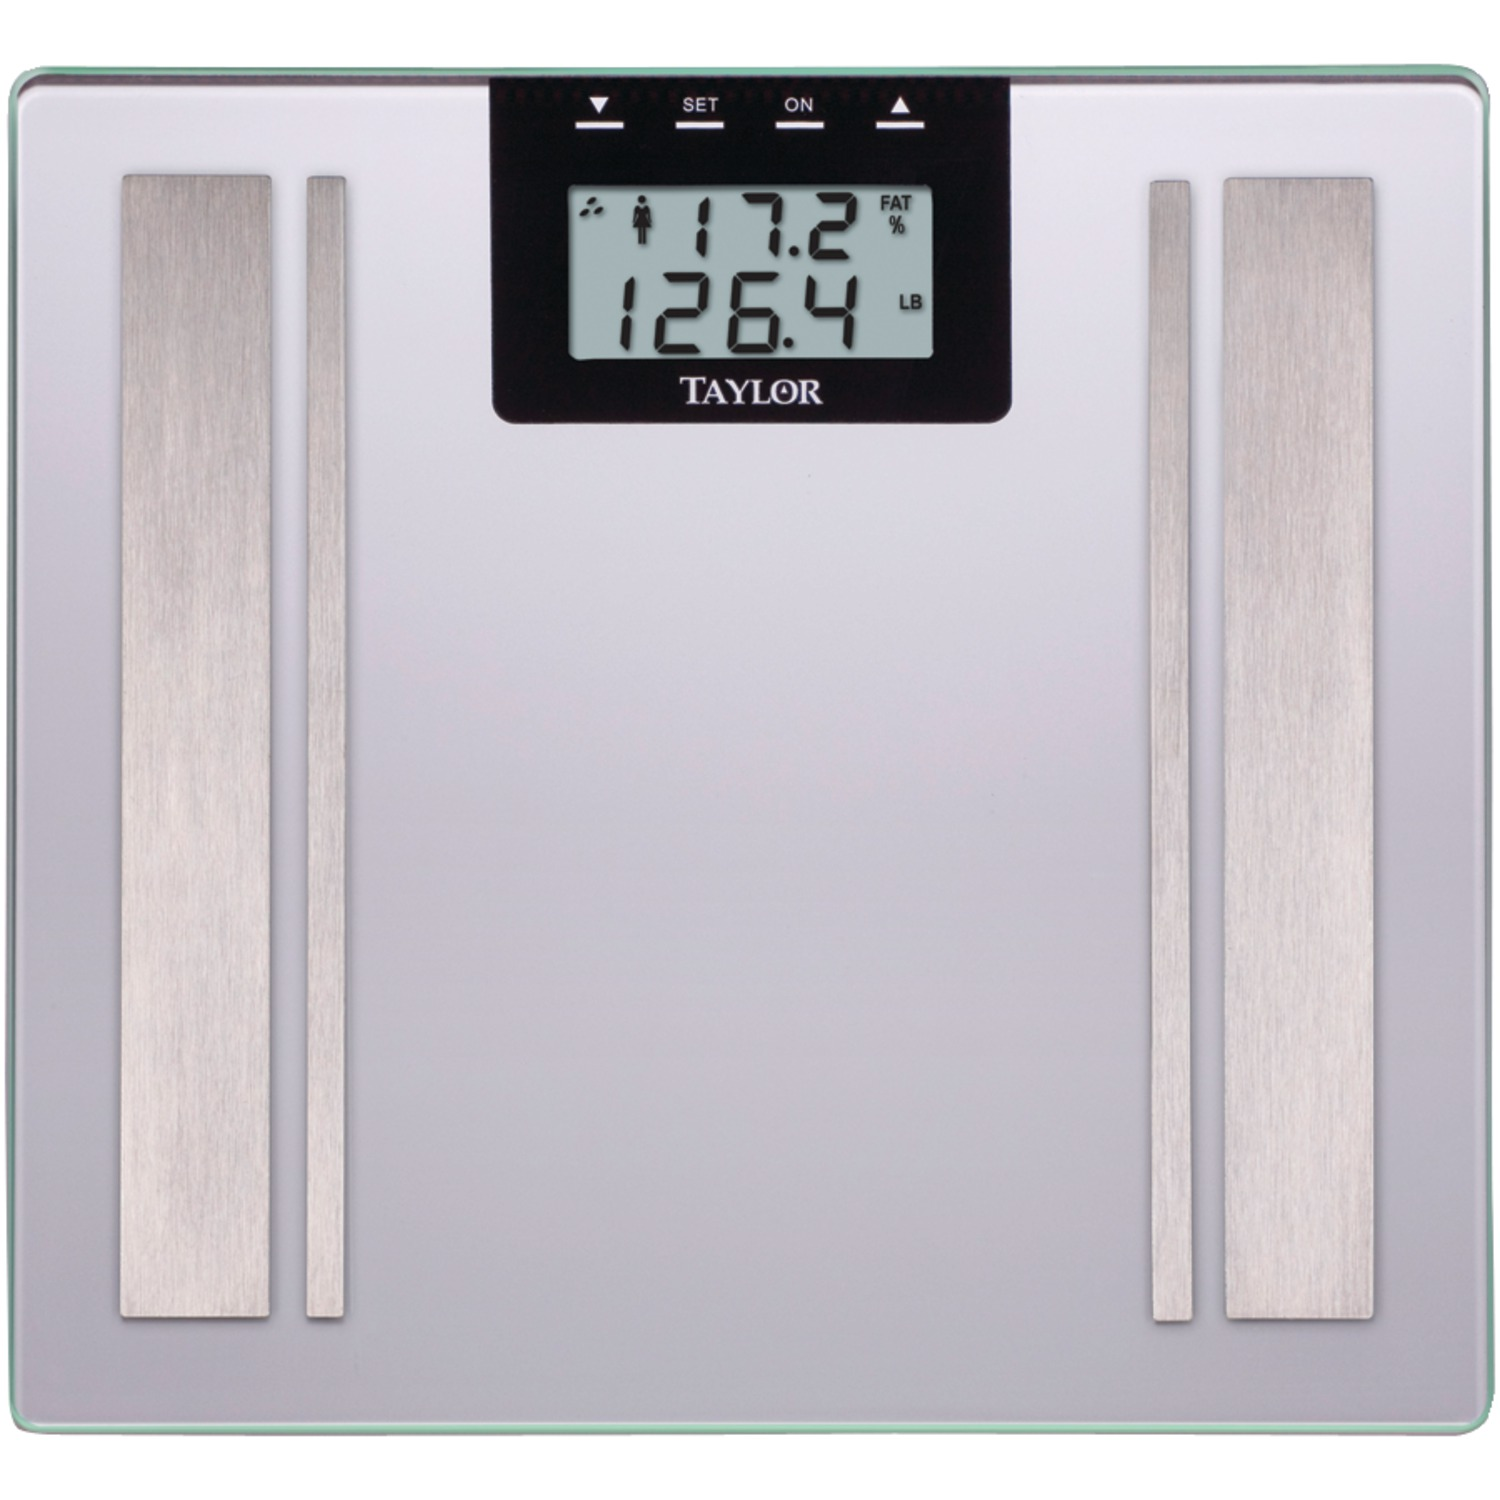 Taylor body fat scale model 5741 manual